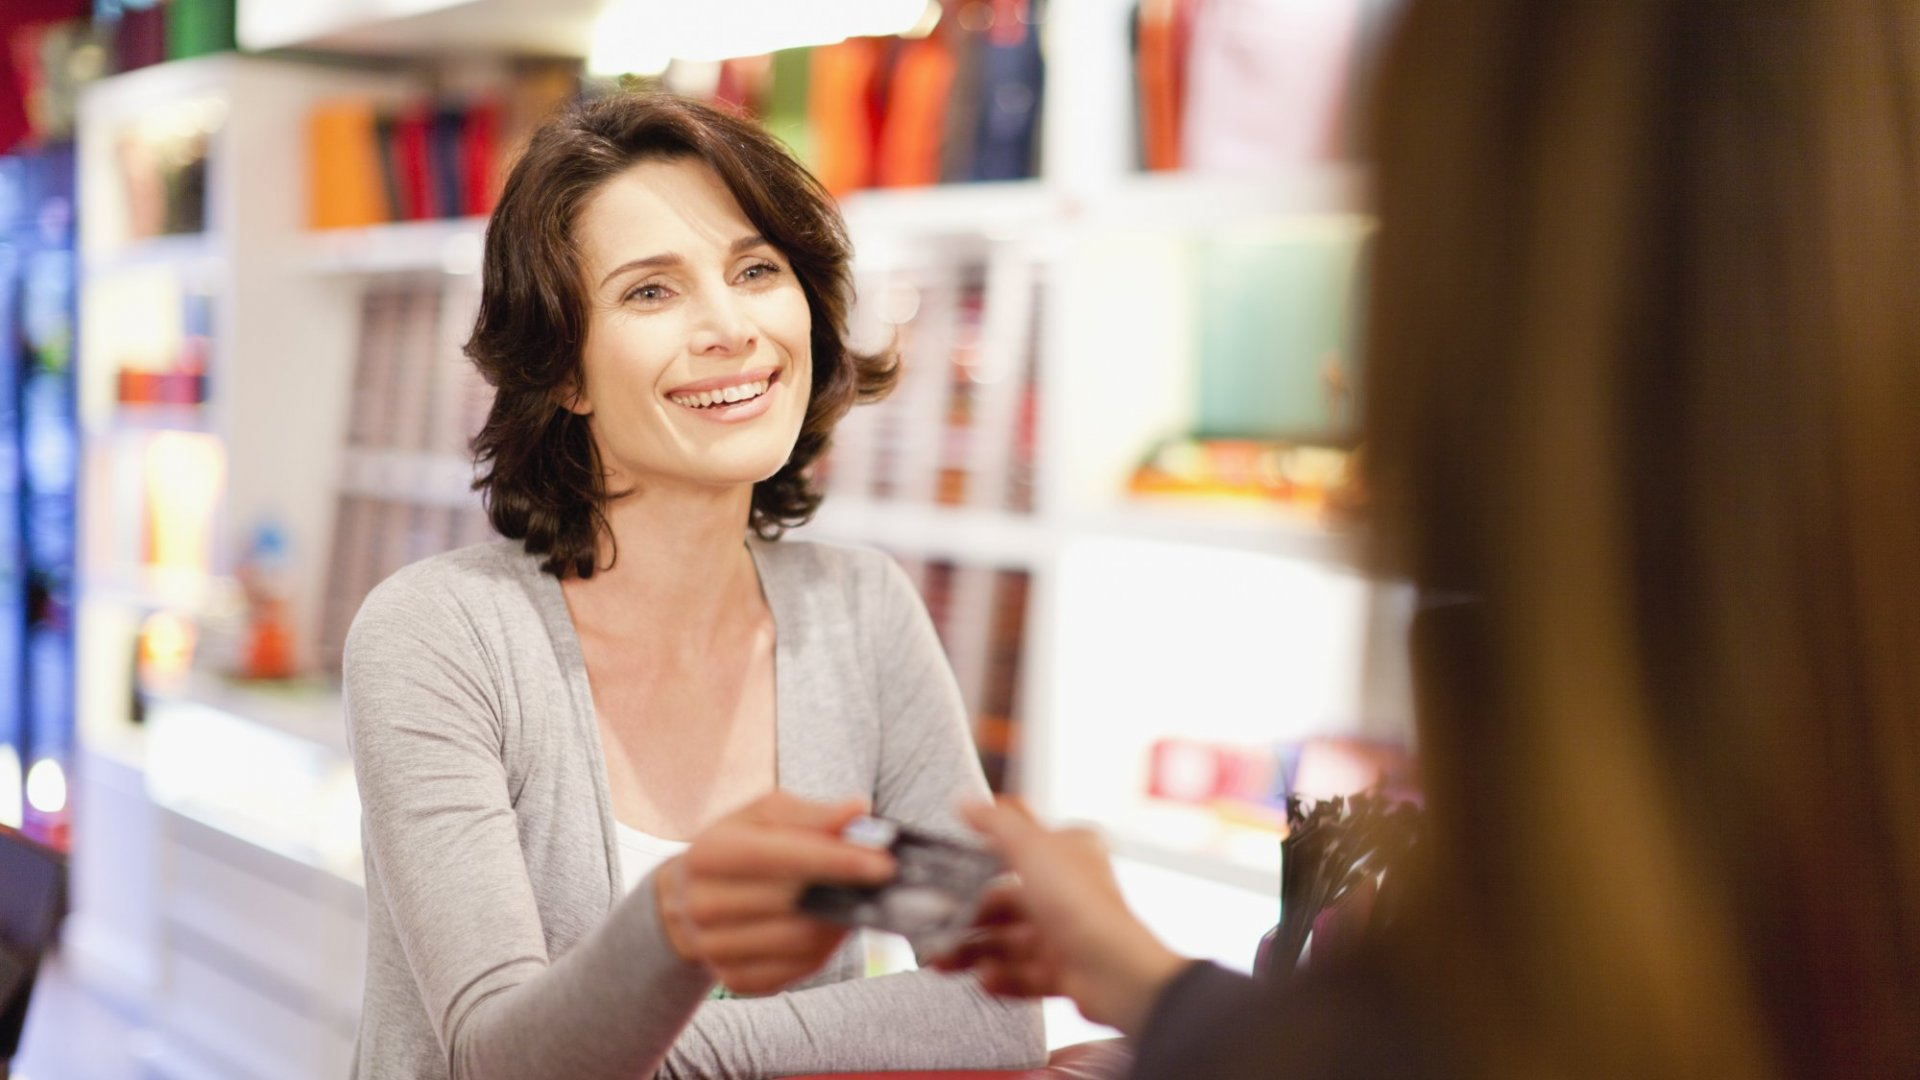 3 Psychology-Based Pricing Strategies That Won't Make Customers Dread Reaching for Their Wallet